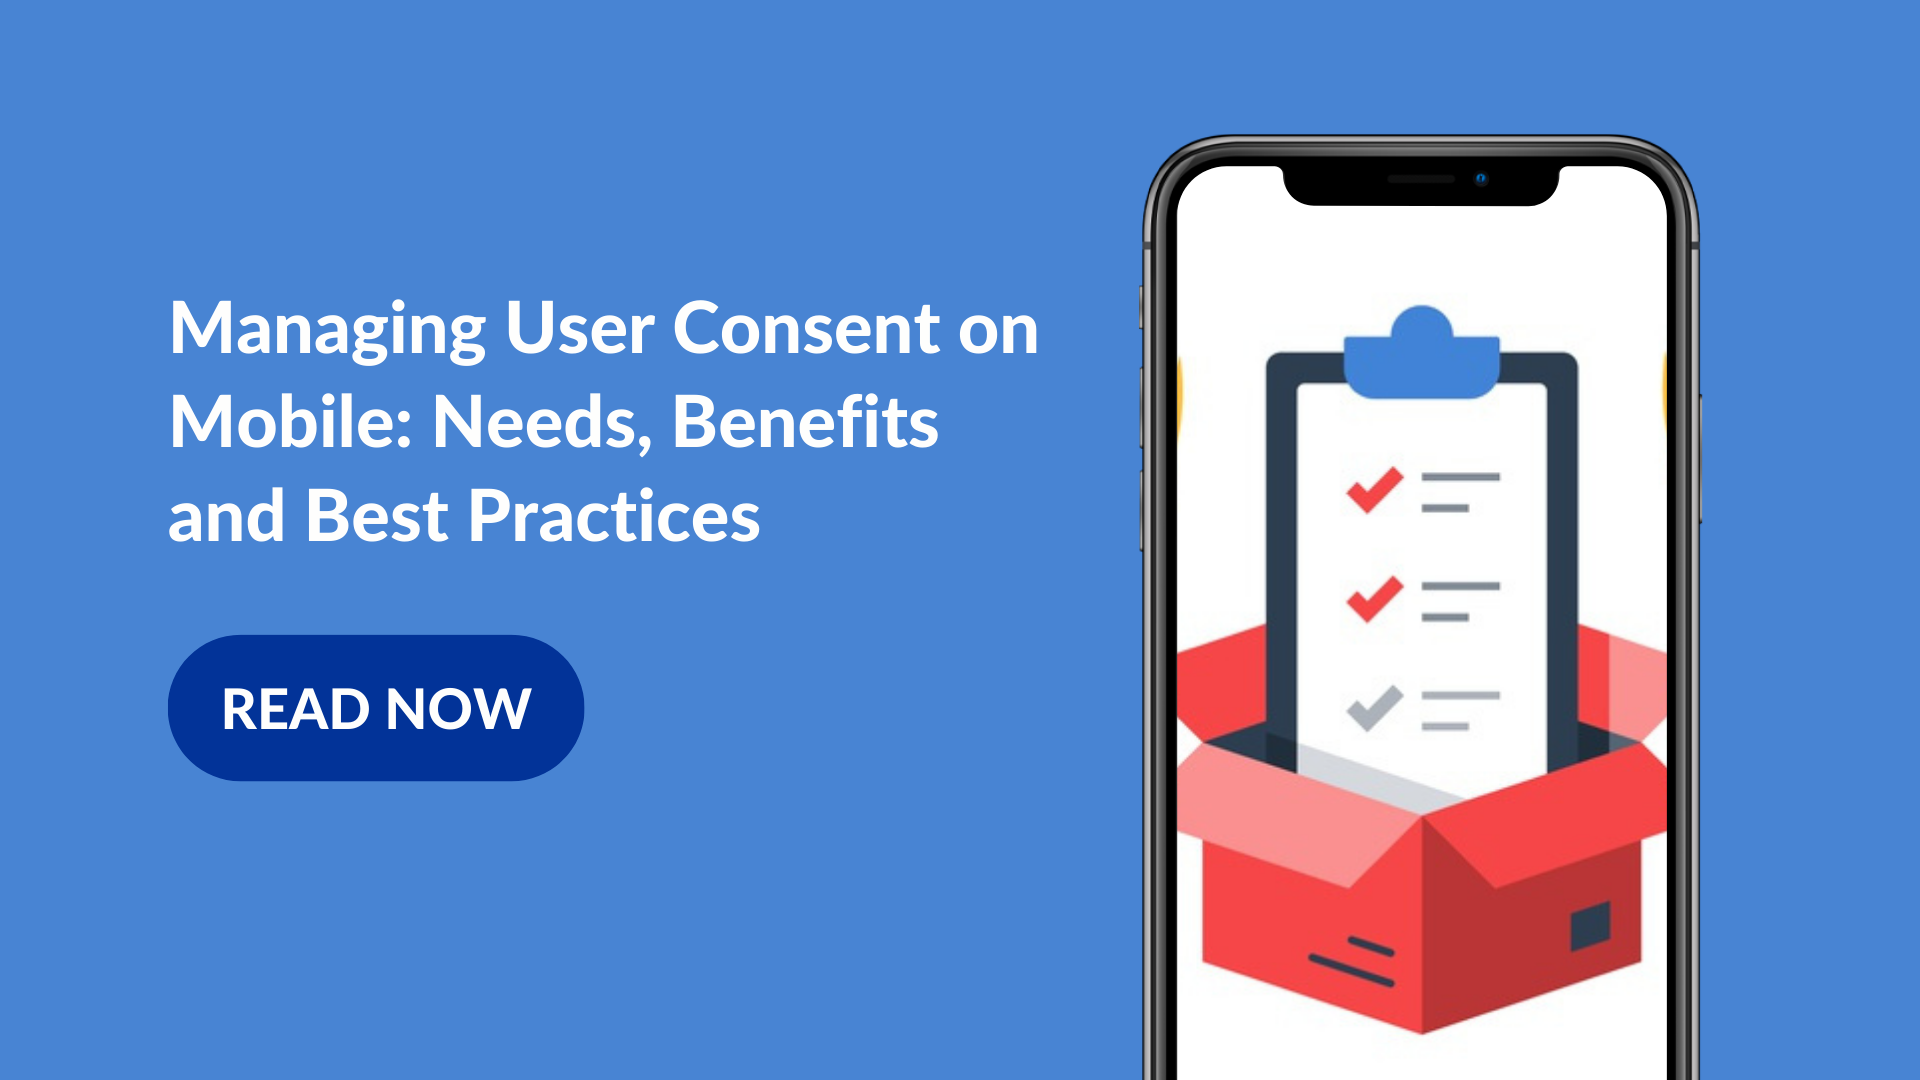 Managing User Consent on Mobile: Needs, Benefits and Best Practices